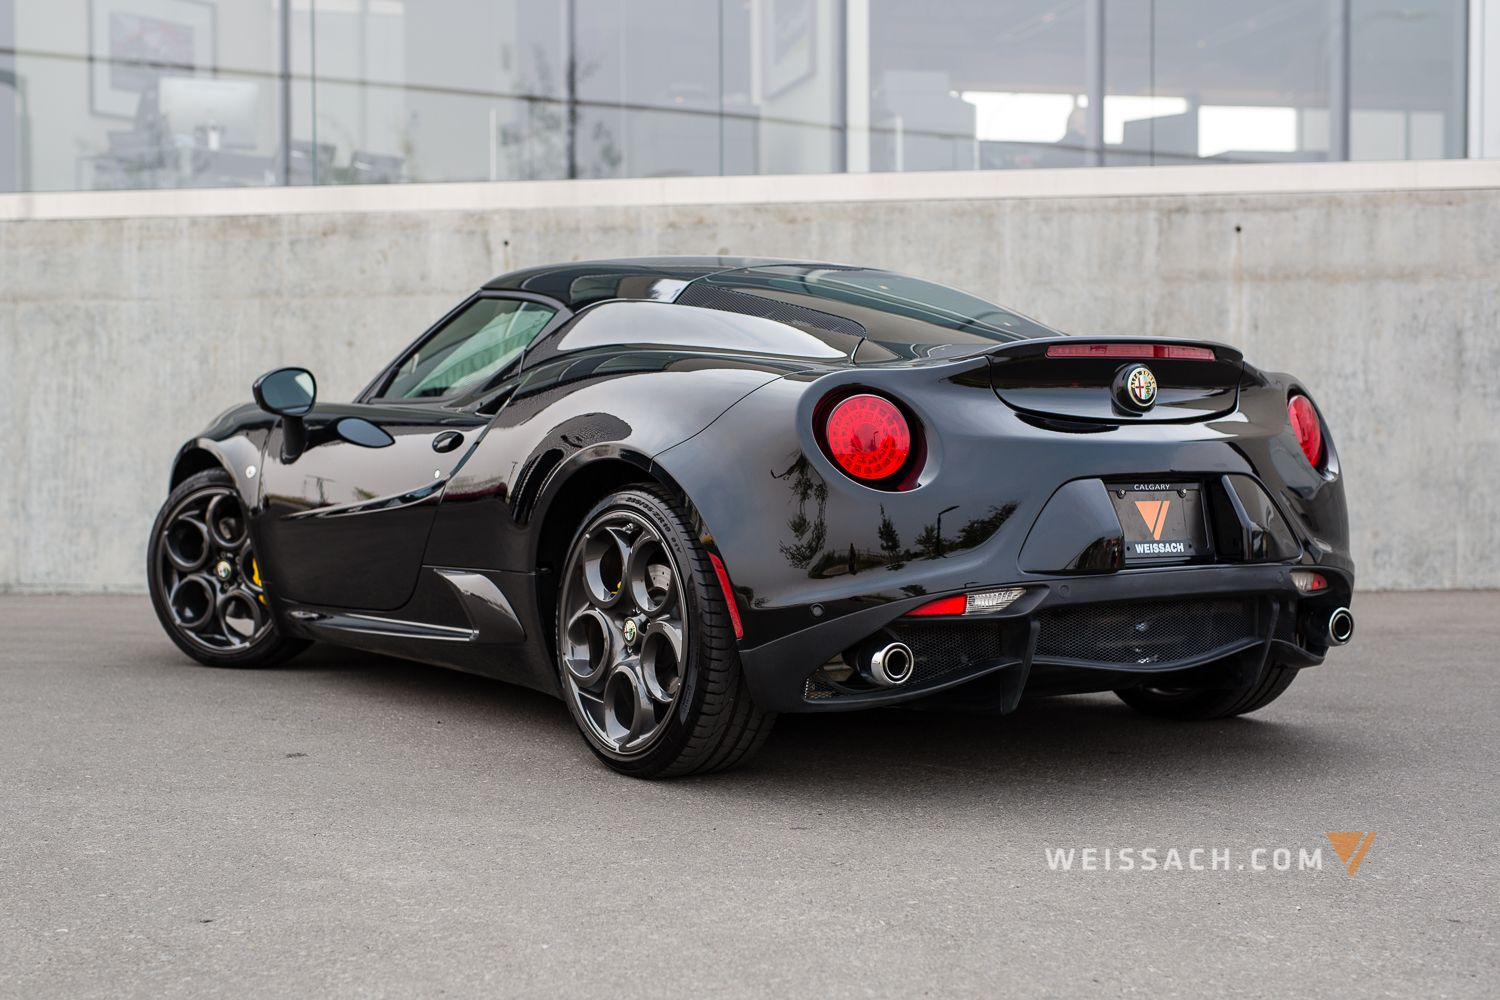 black finish, with black interior. the alfa romeo 4c coupe, is